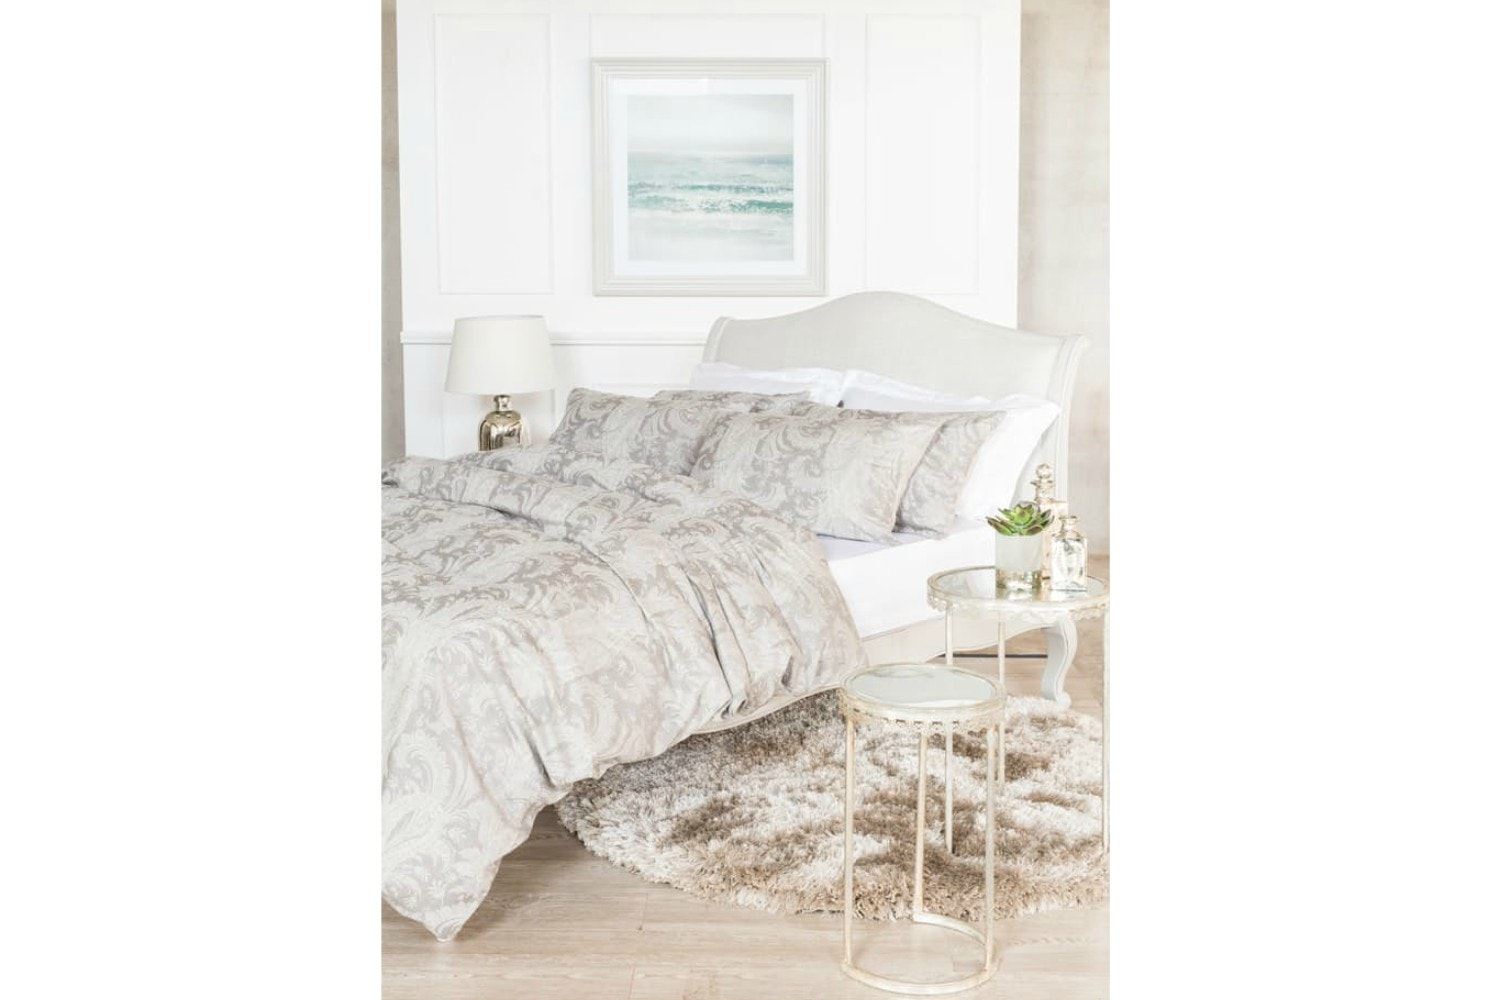 The Linen Room Damask Duvet Cover Set | Double